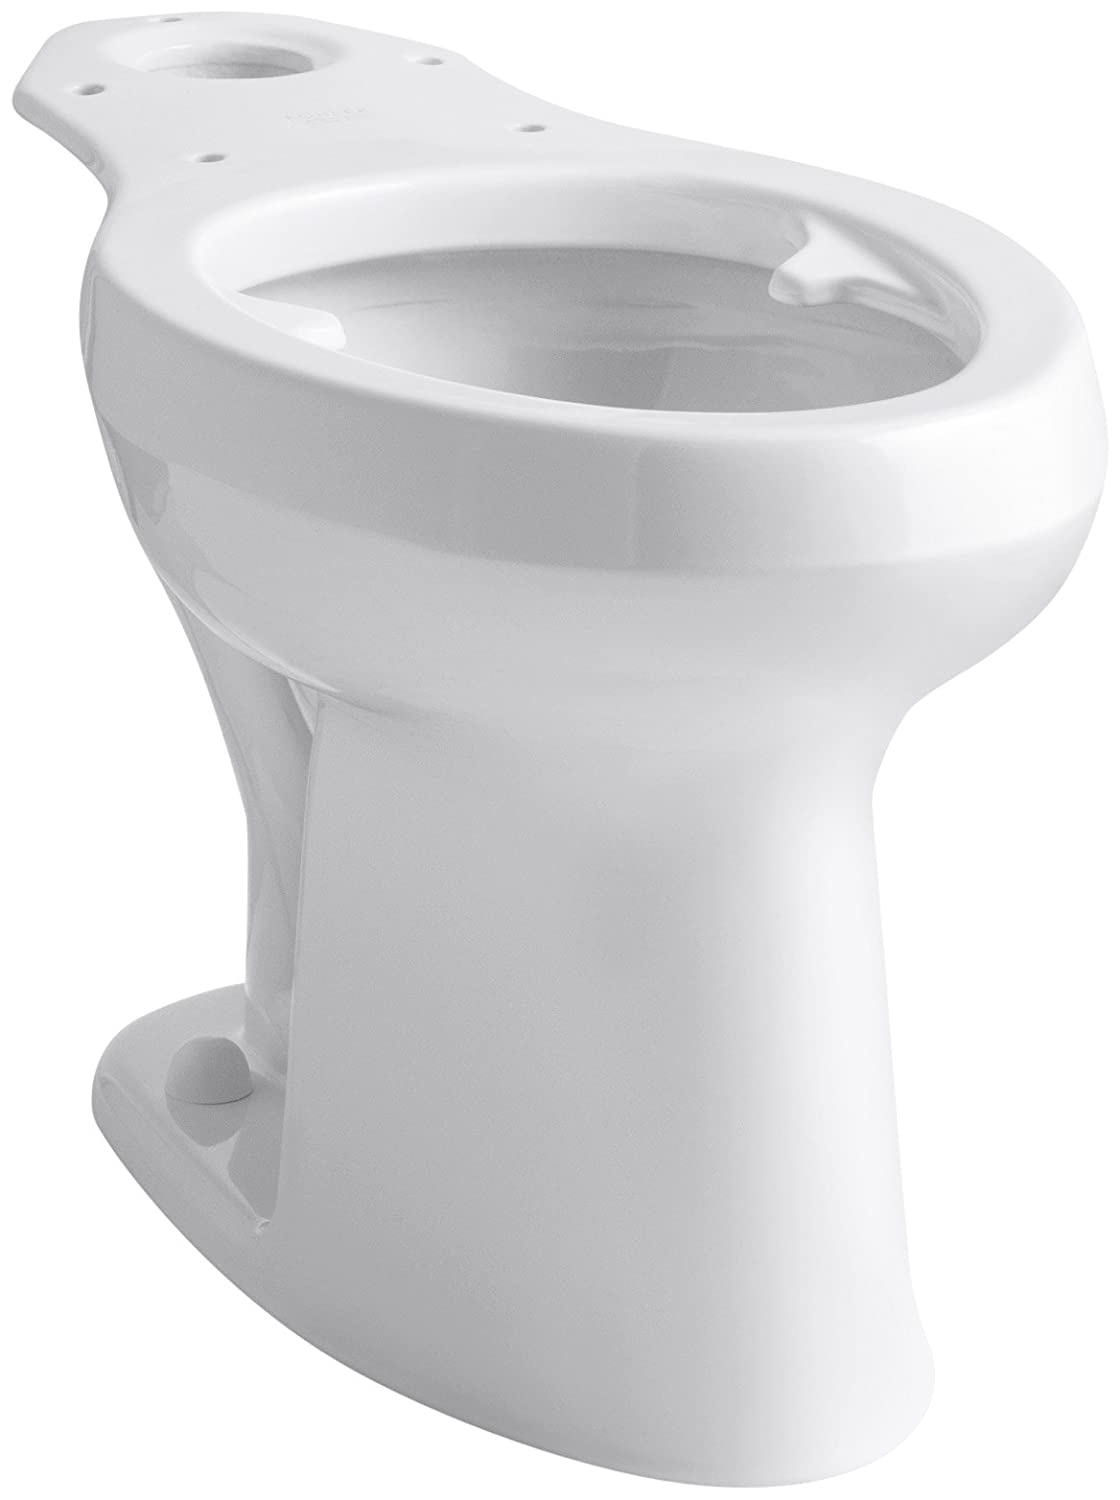 KOHLER K-4304-L-0 Highline(R) Toilet with Pressure Lite(R) Flushing Technology and Bedpan Lugs, White White